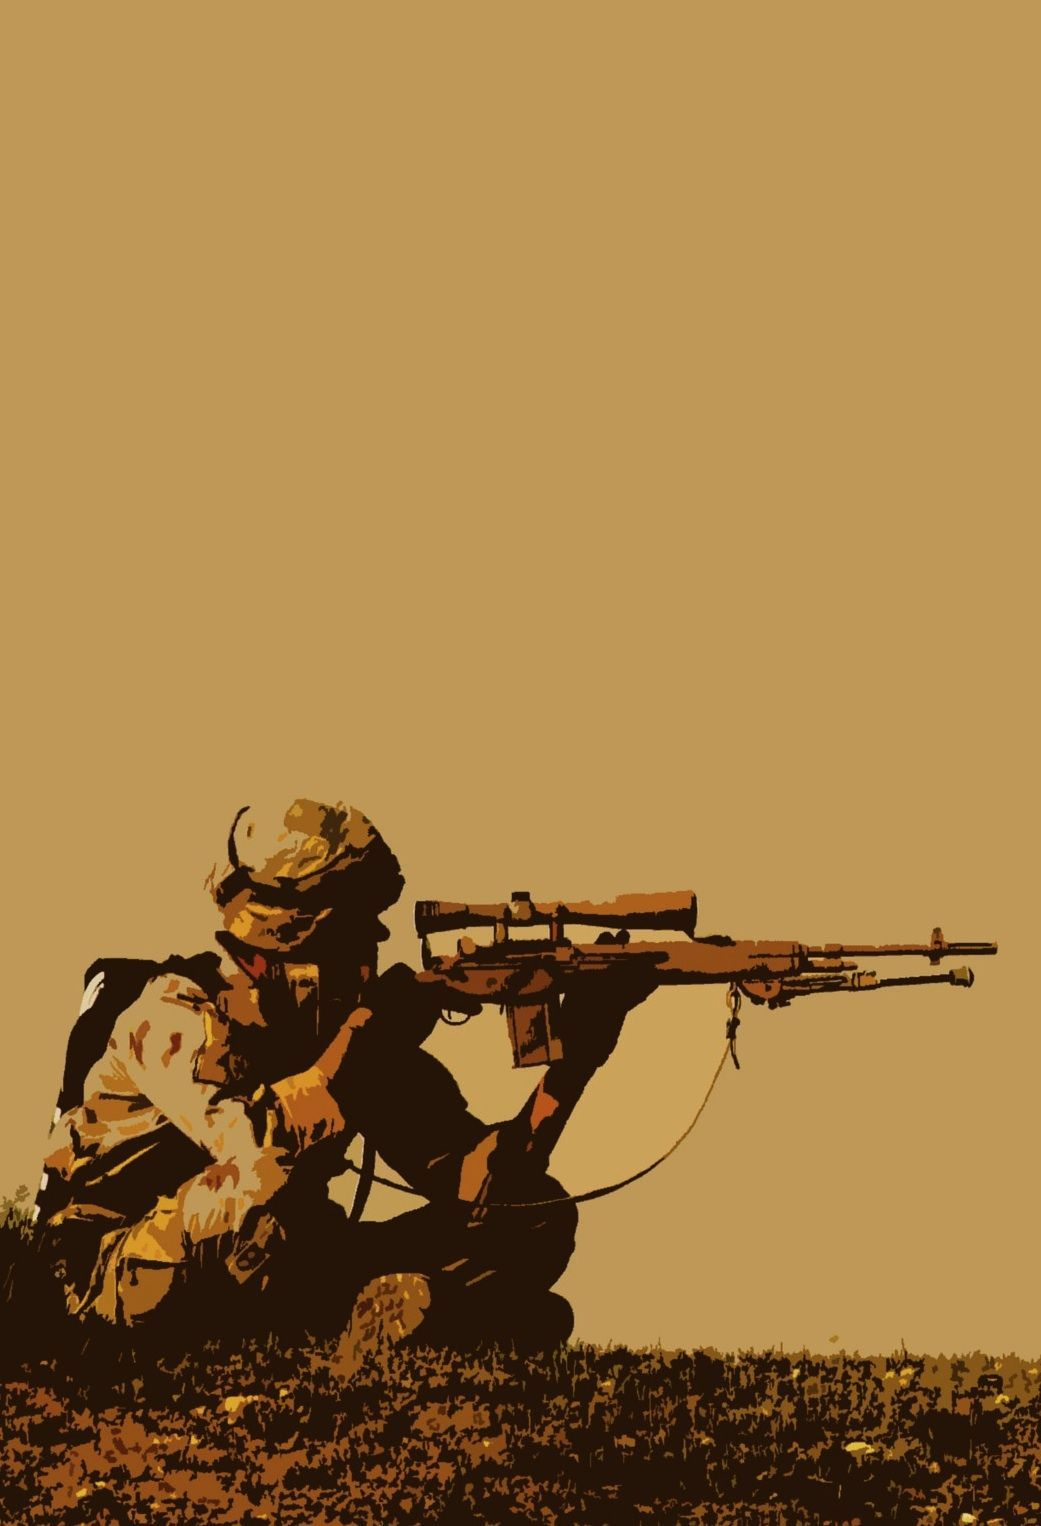 Military Wallpaper For Mobile Phone Tablet Desktop Computer And Other Devices Hd And 4k Wallpapers In 2020 Army Wallpaper Military Wallpaper Ios 7 Wallpaper